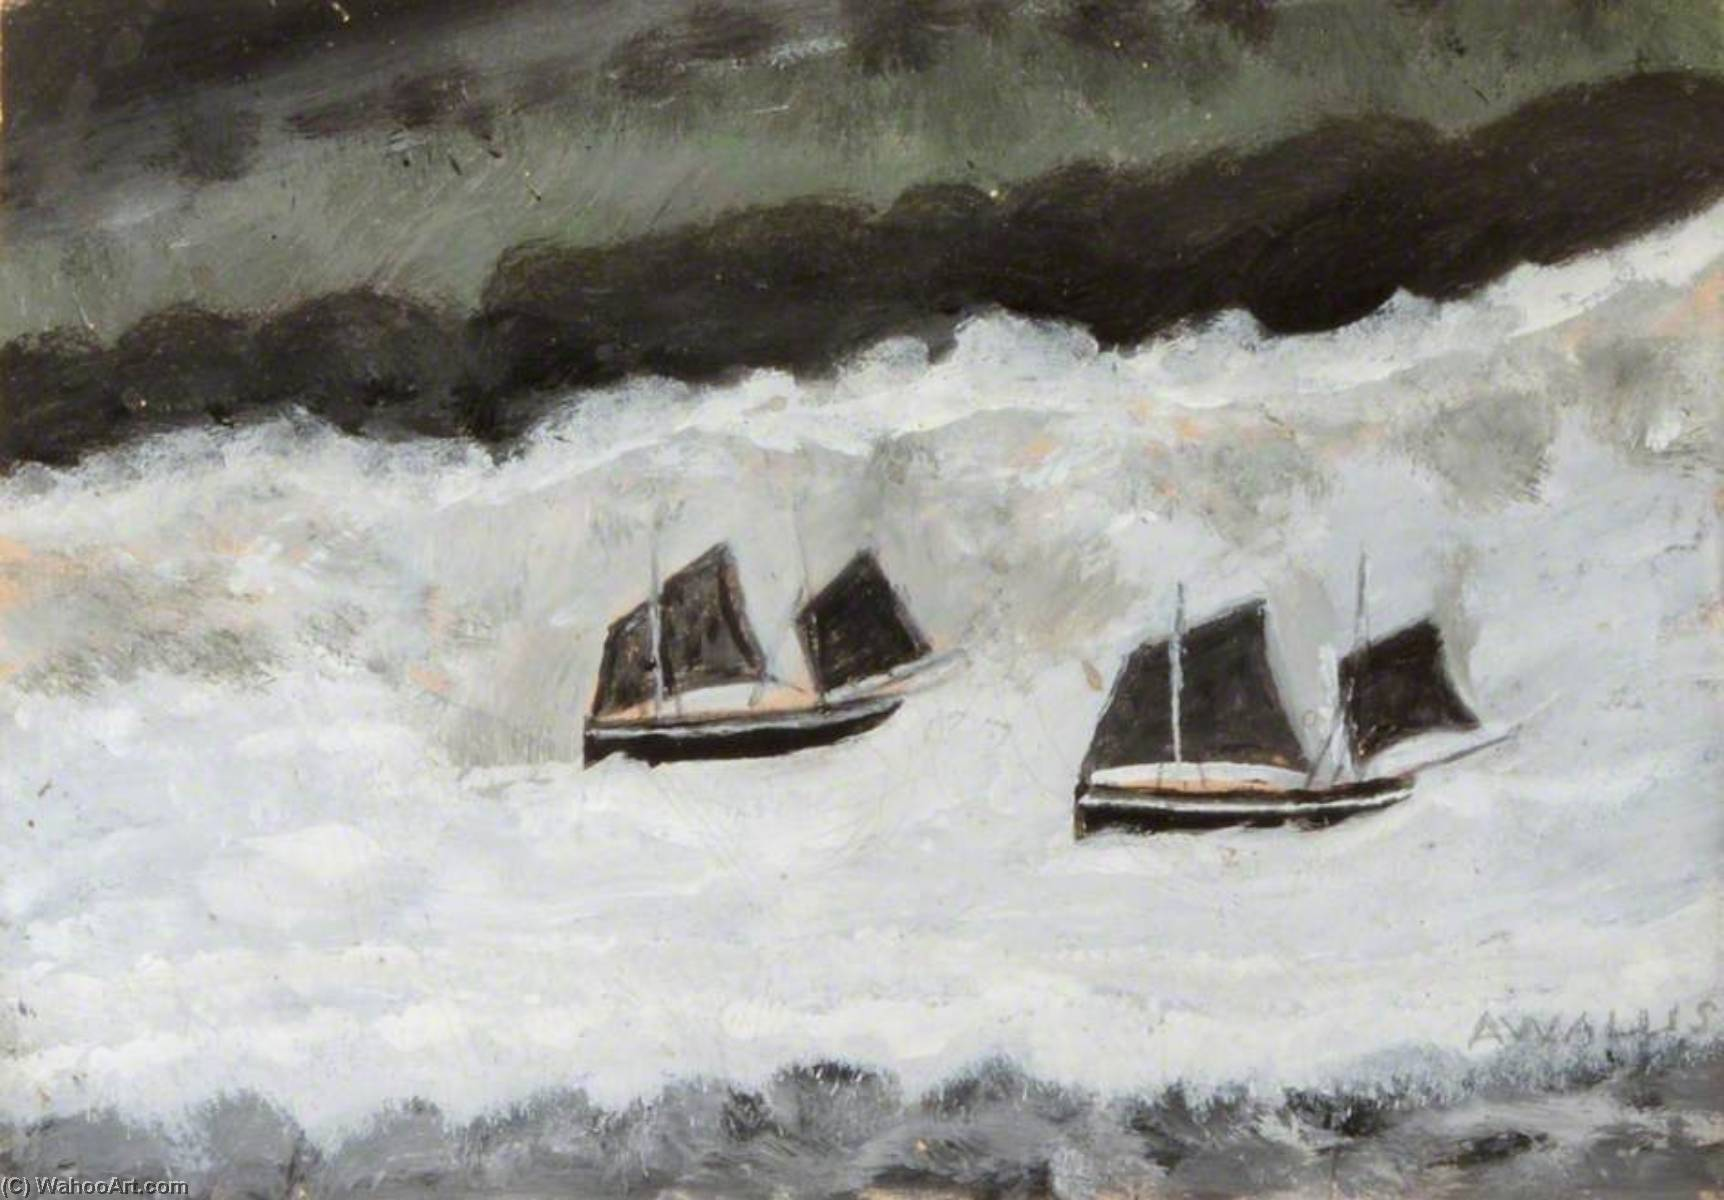 Парусные Лодки по Alfred Wallis (1855-1942, United Kingdom) | WahooArt.com